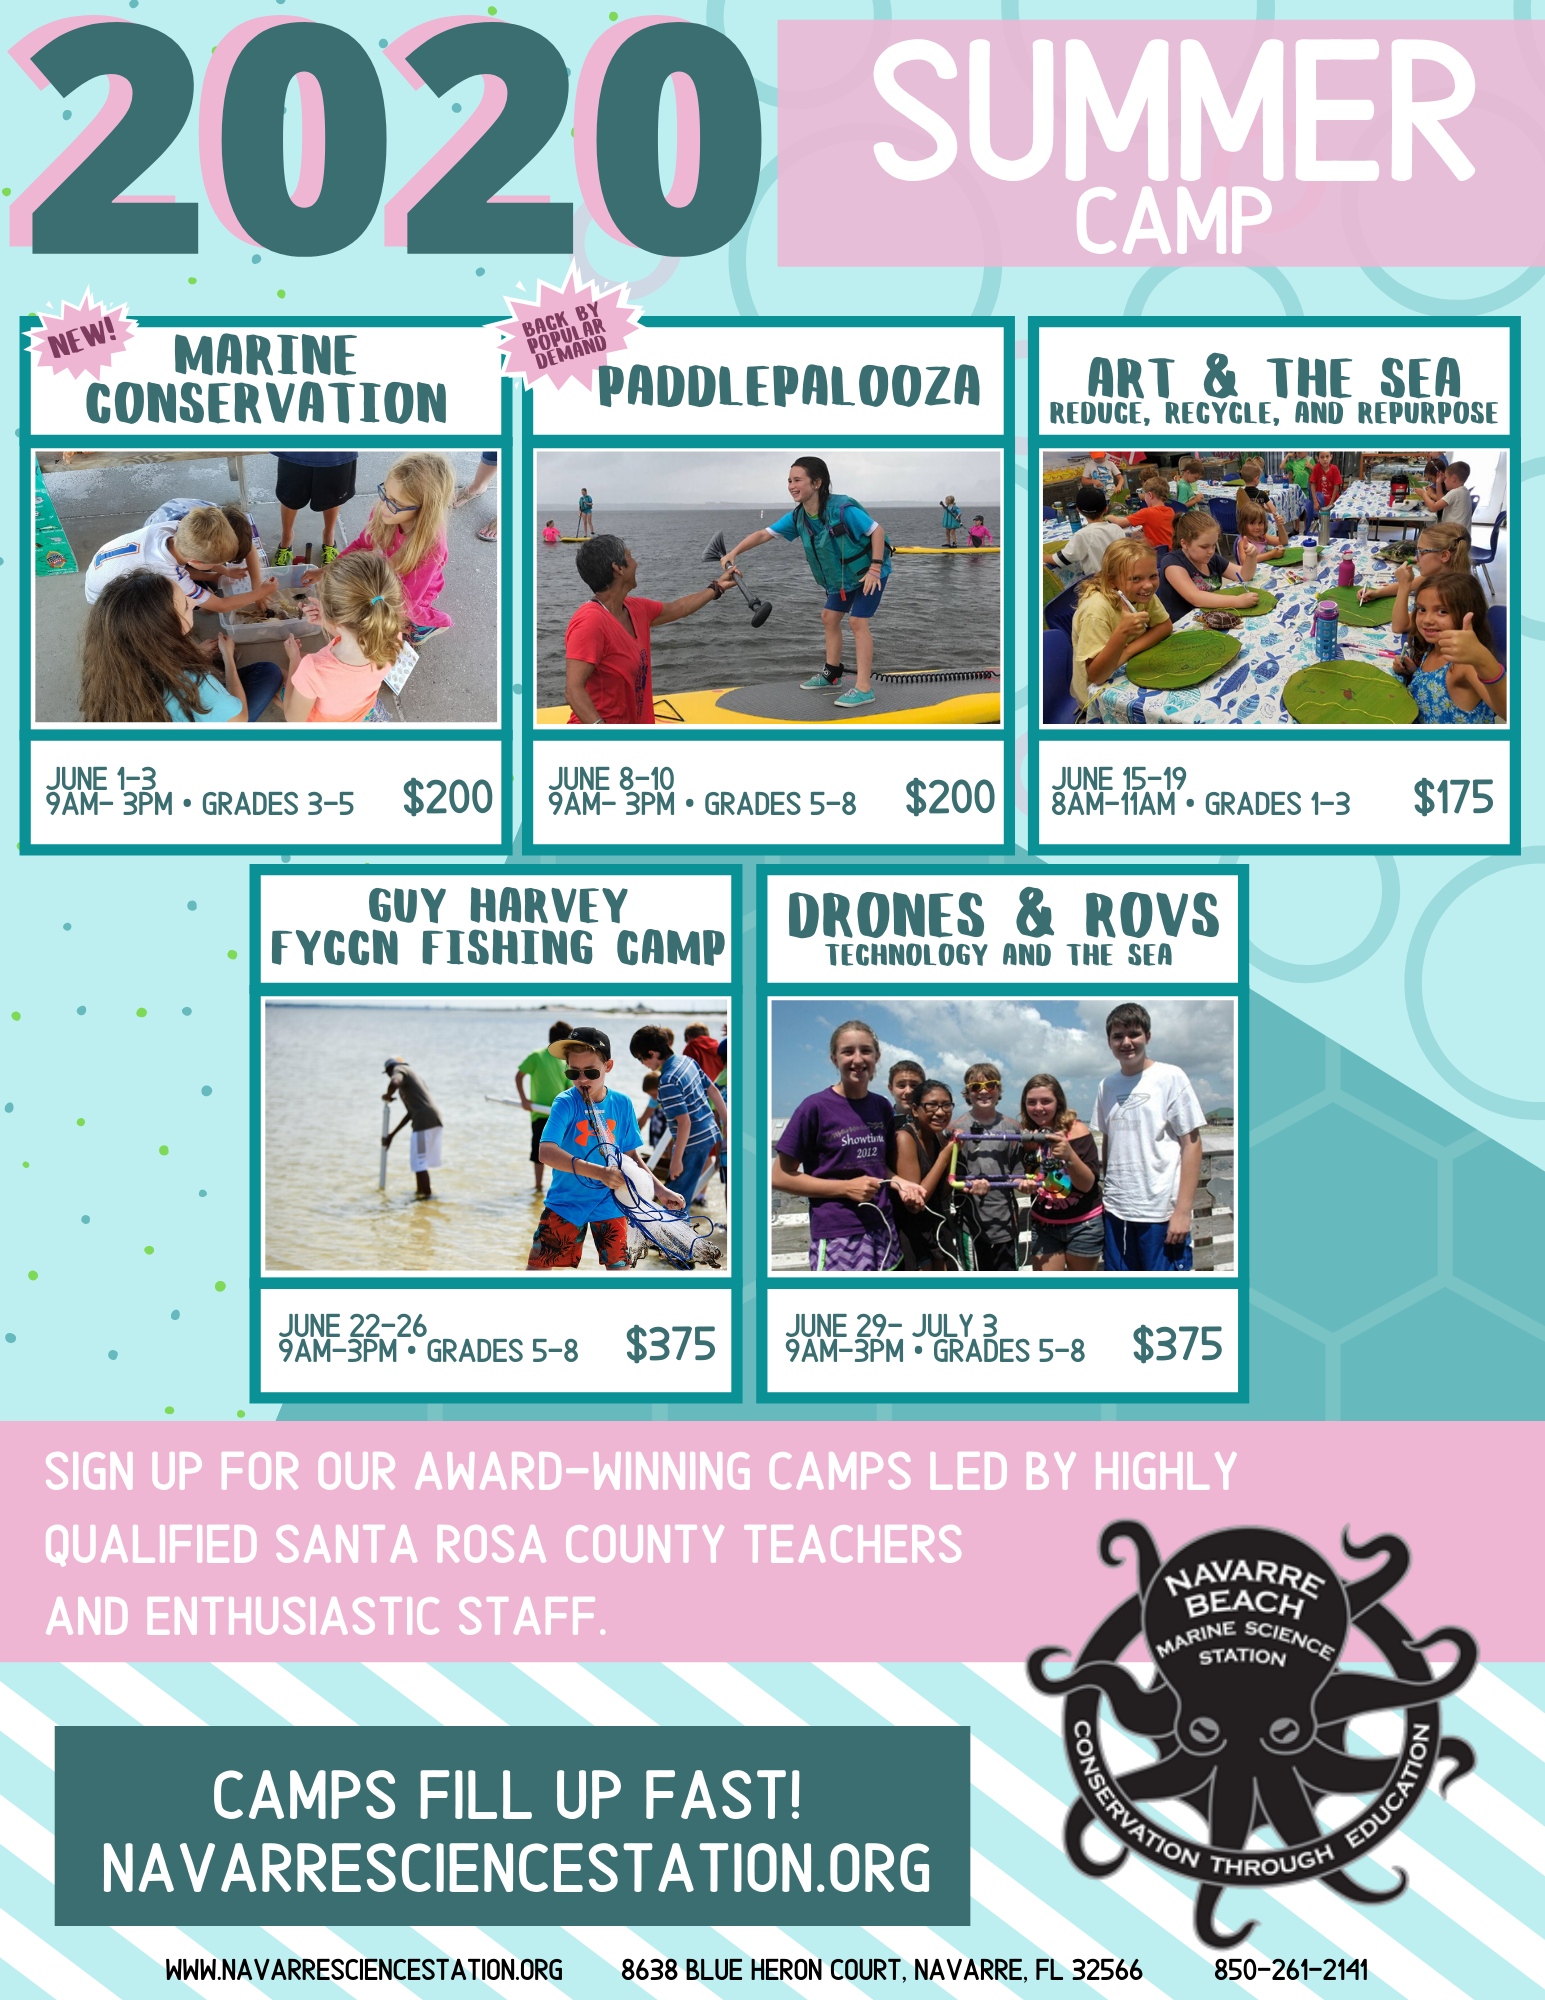 image is a picture of our summer camp schedule